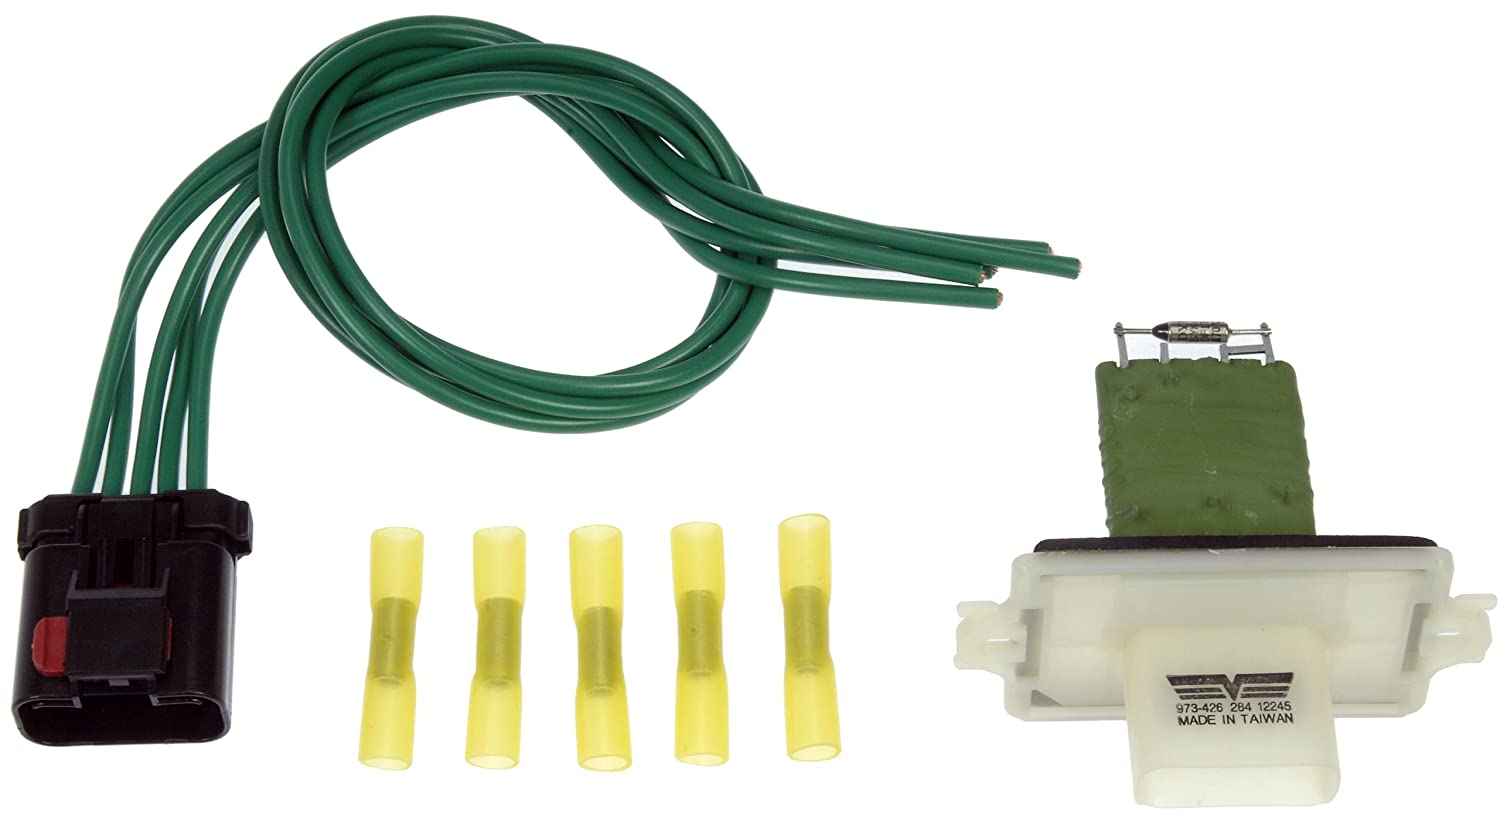 71d6VCcmzNL._SL1500_ amazon com dorman 973 426 blower motor resistor kit automotive 2004 dodge dakota blower motor resistor wiring harness at crackthecode.co